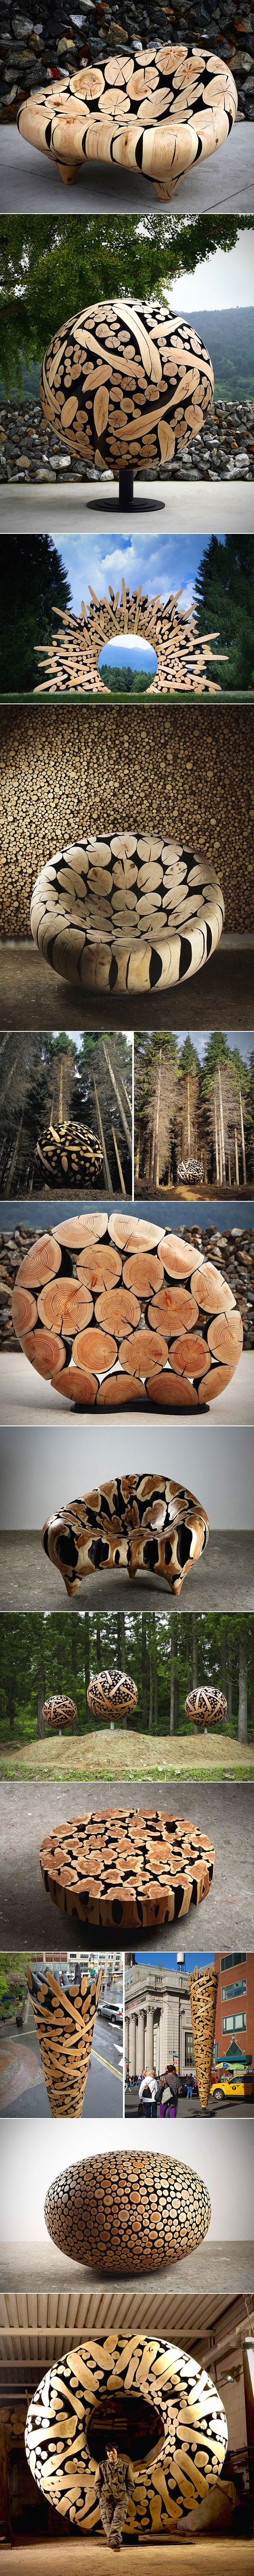 160 best Woodworking images on Pinterest